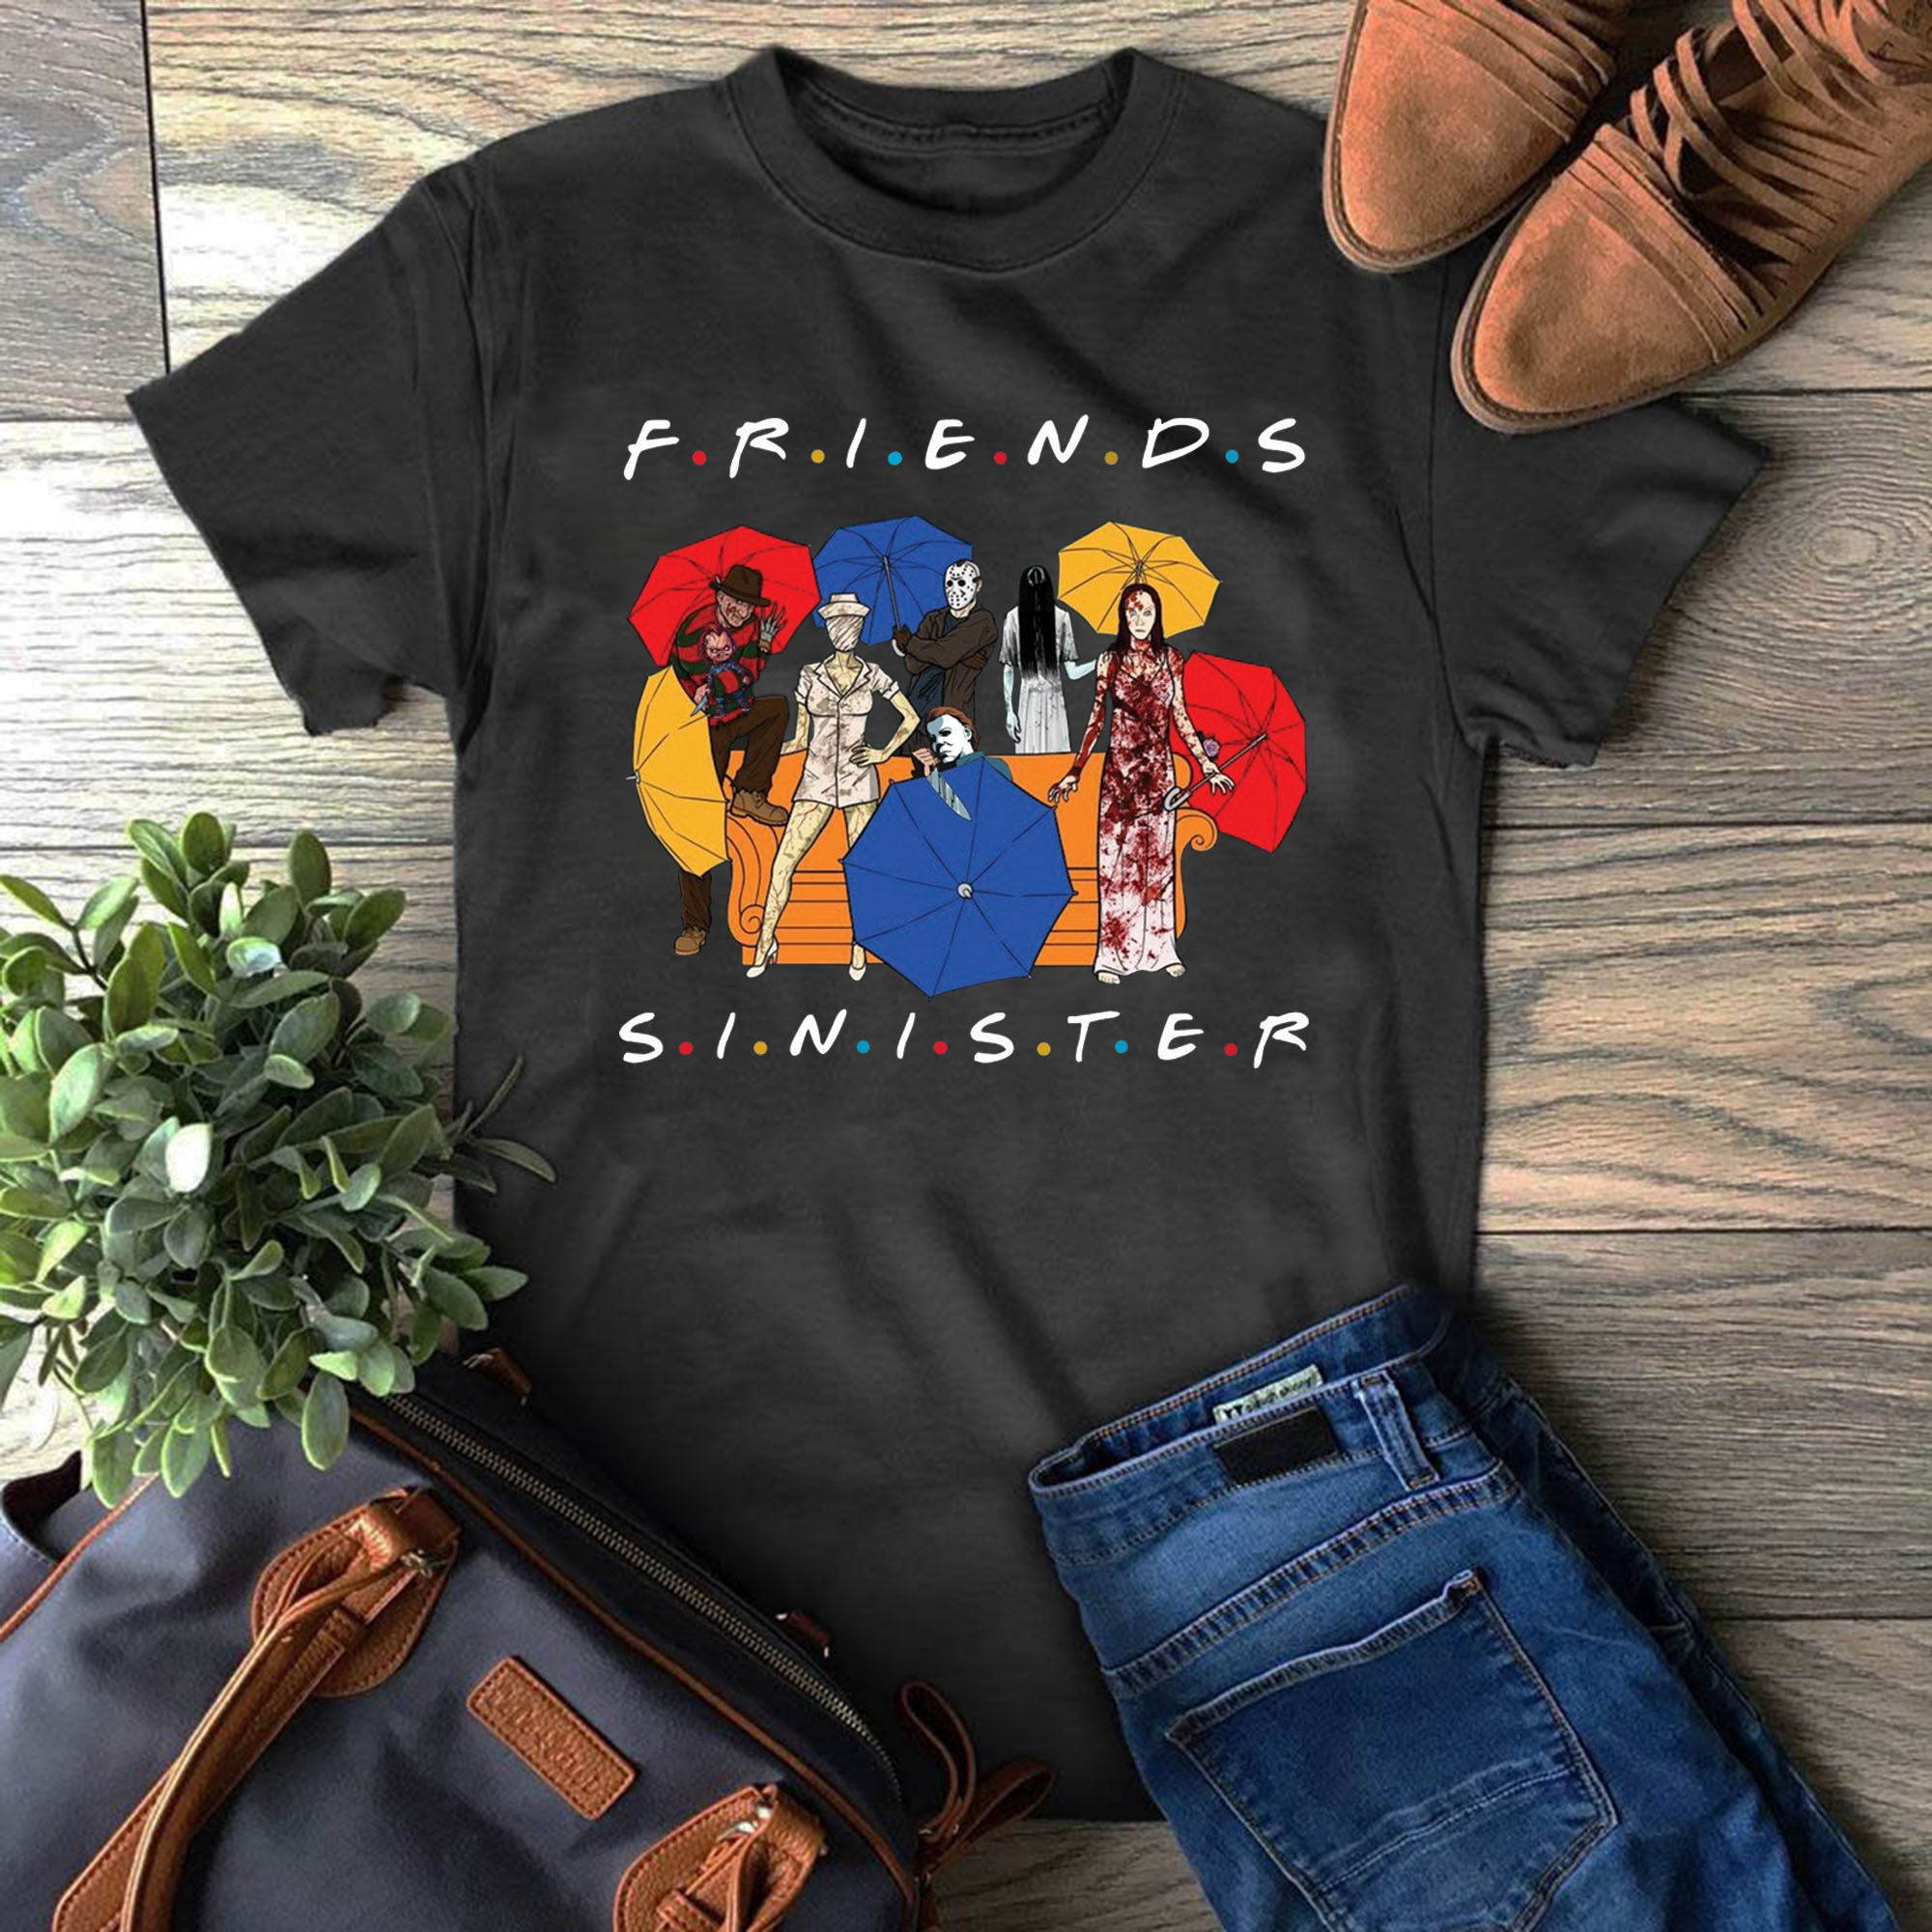 Sinister friends TV shows for best friends of the 90s Objectives Horror  movies H Focus P Focus Halloween Not too scary T-shirts - Reviewshirts  Office